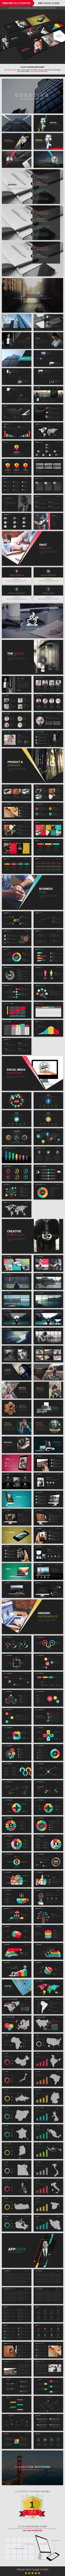 Creative PowerPoint Template #design #slides #presentation Download: http://graphicriver.net/item/creative-powerpoint-template/13498841?ref=ksioks